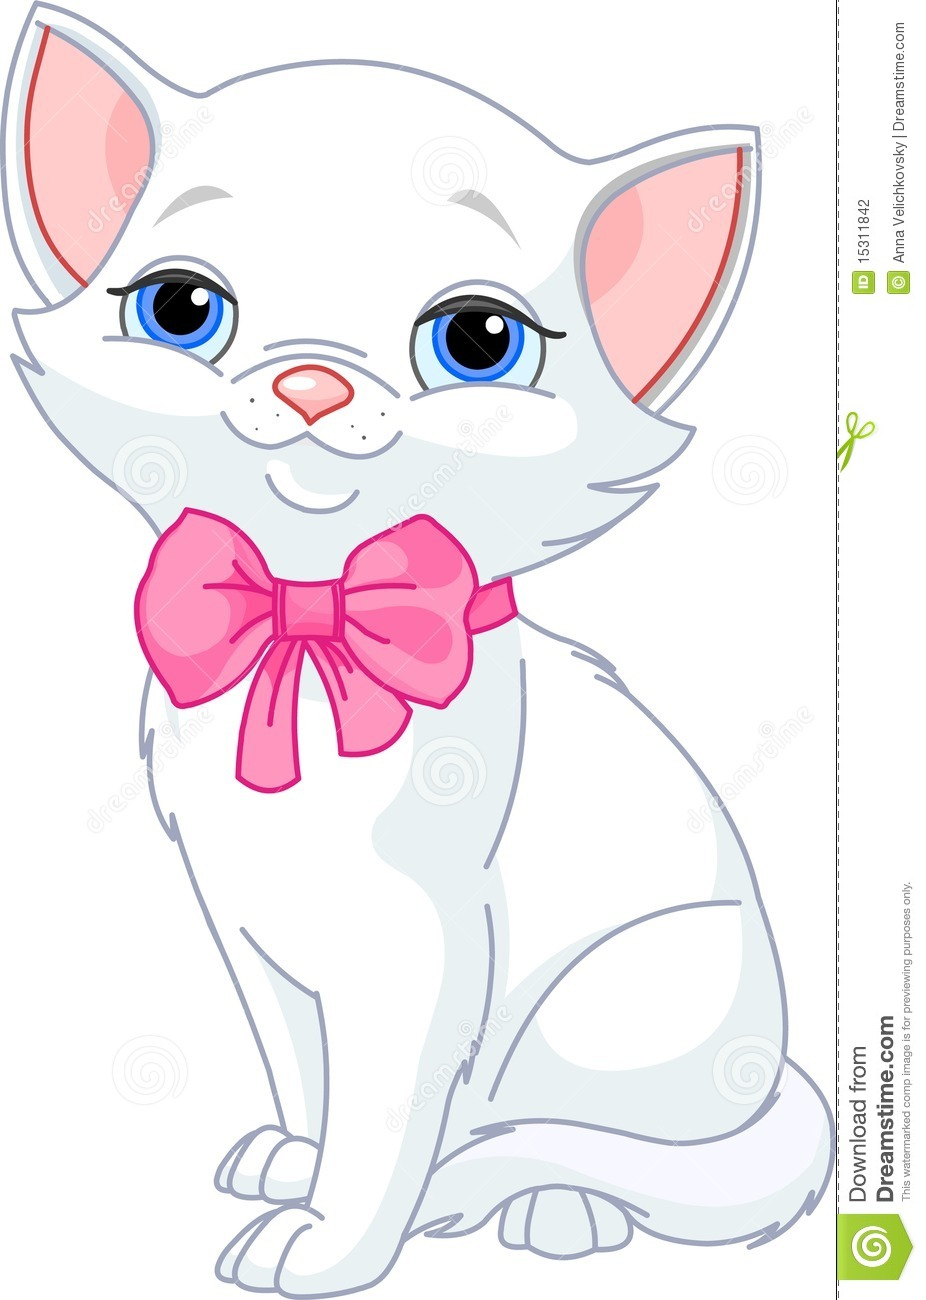 Very Cute White Cat Stock Photography - Image: 15311842